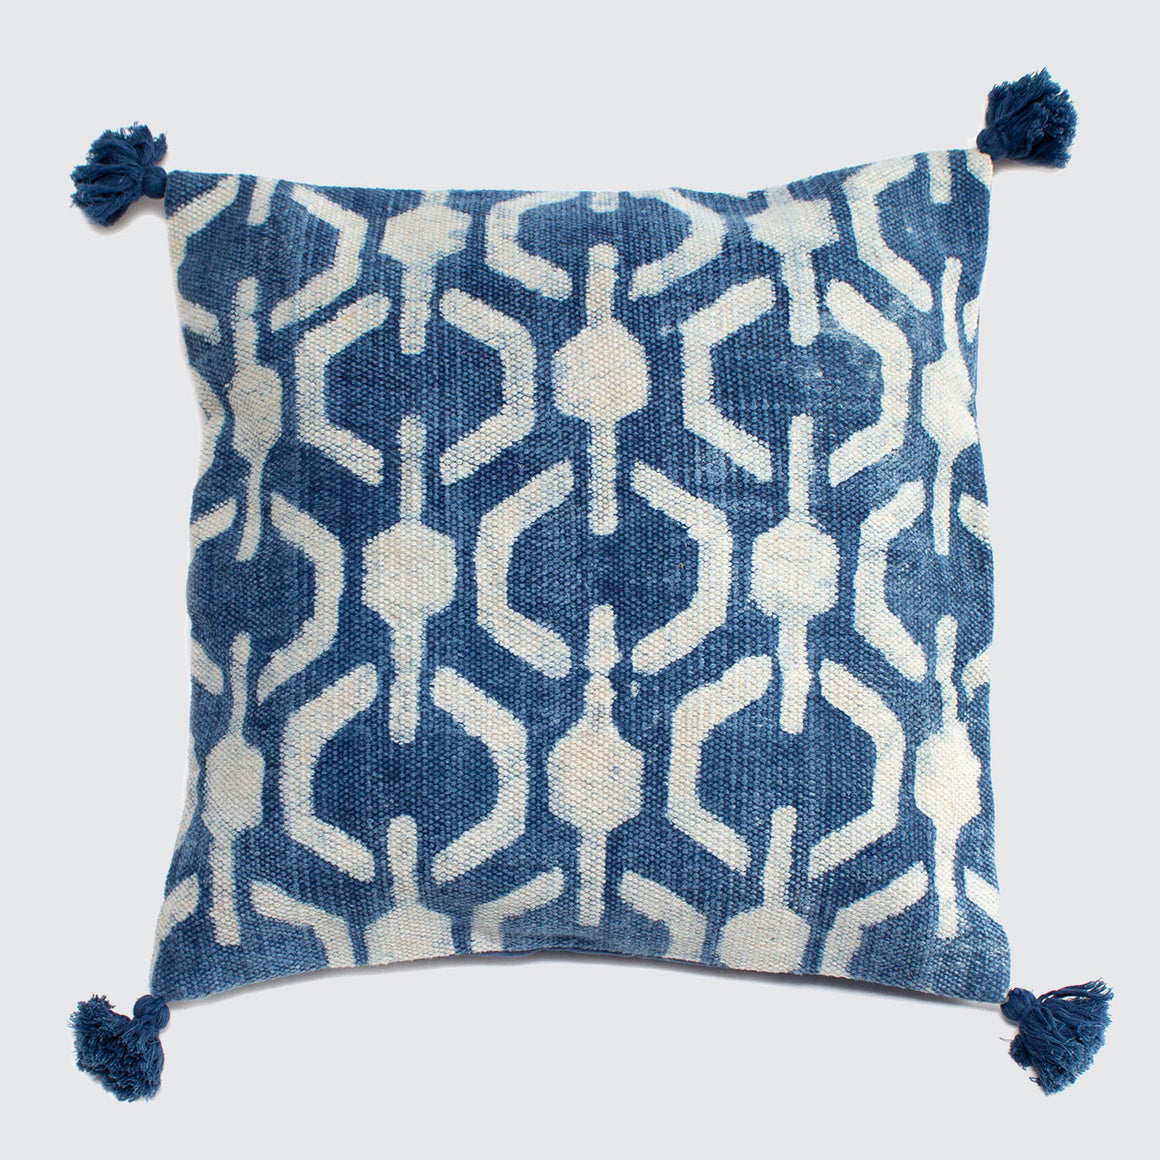 Indian Indigo Block Printed 65cm x 65cm Cushion Covers 'Honeycomb'